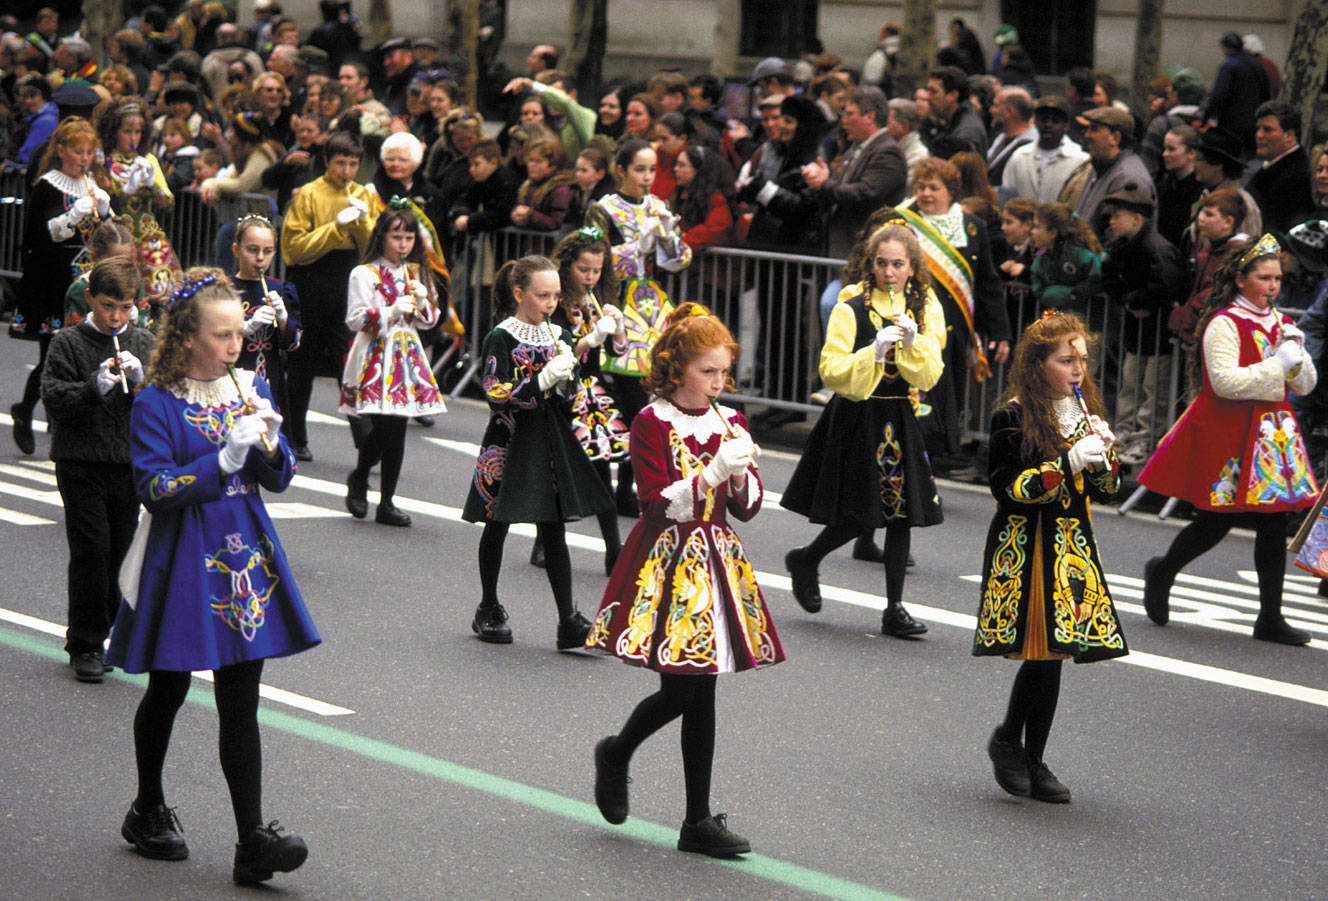 Children-Irish-costumes-New-York-City-paradejpg